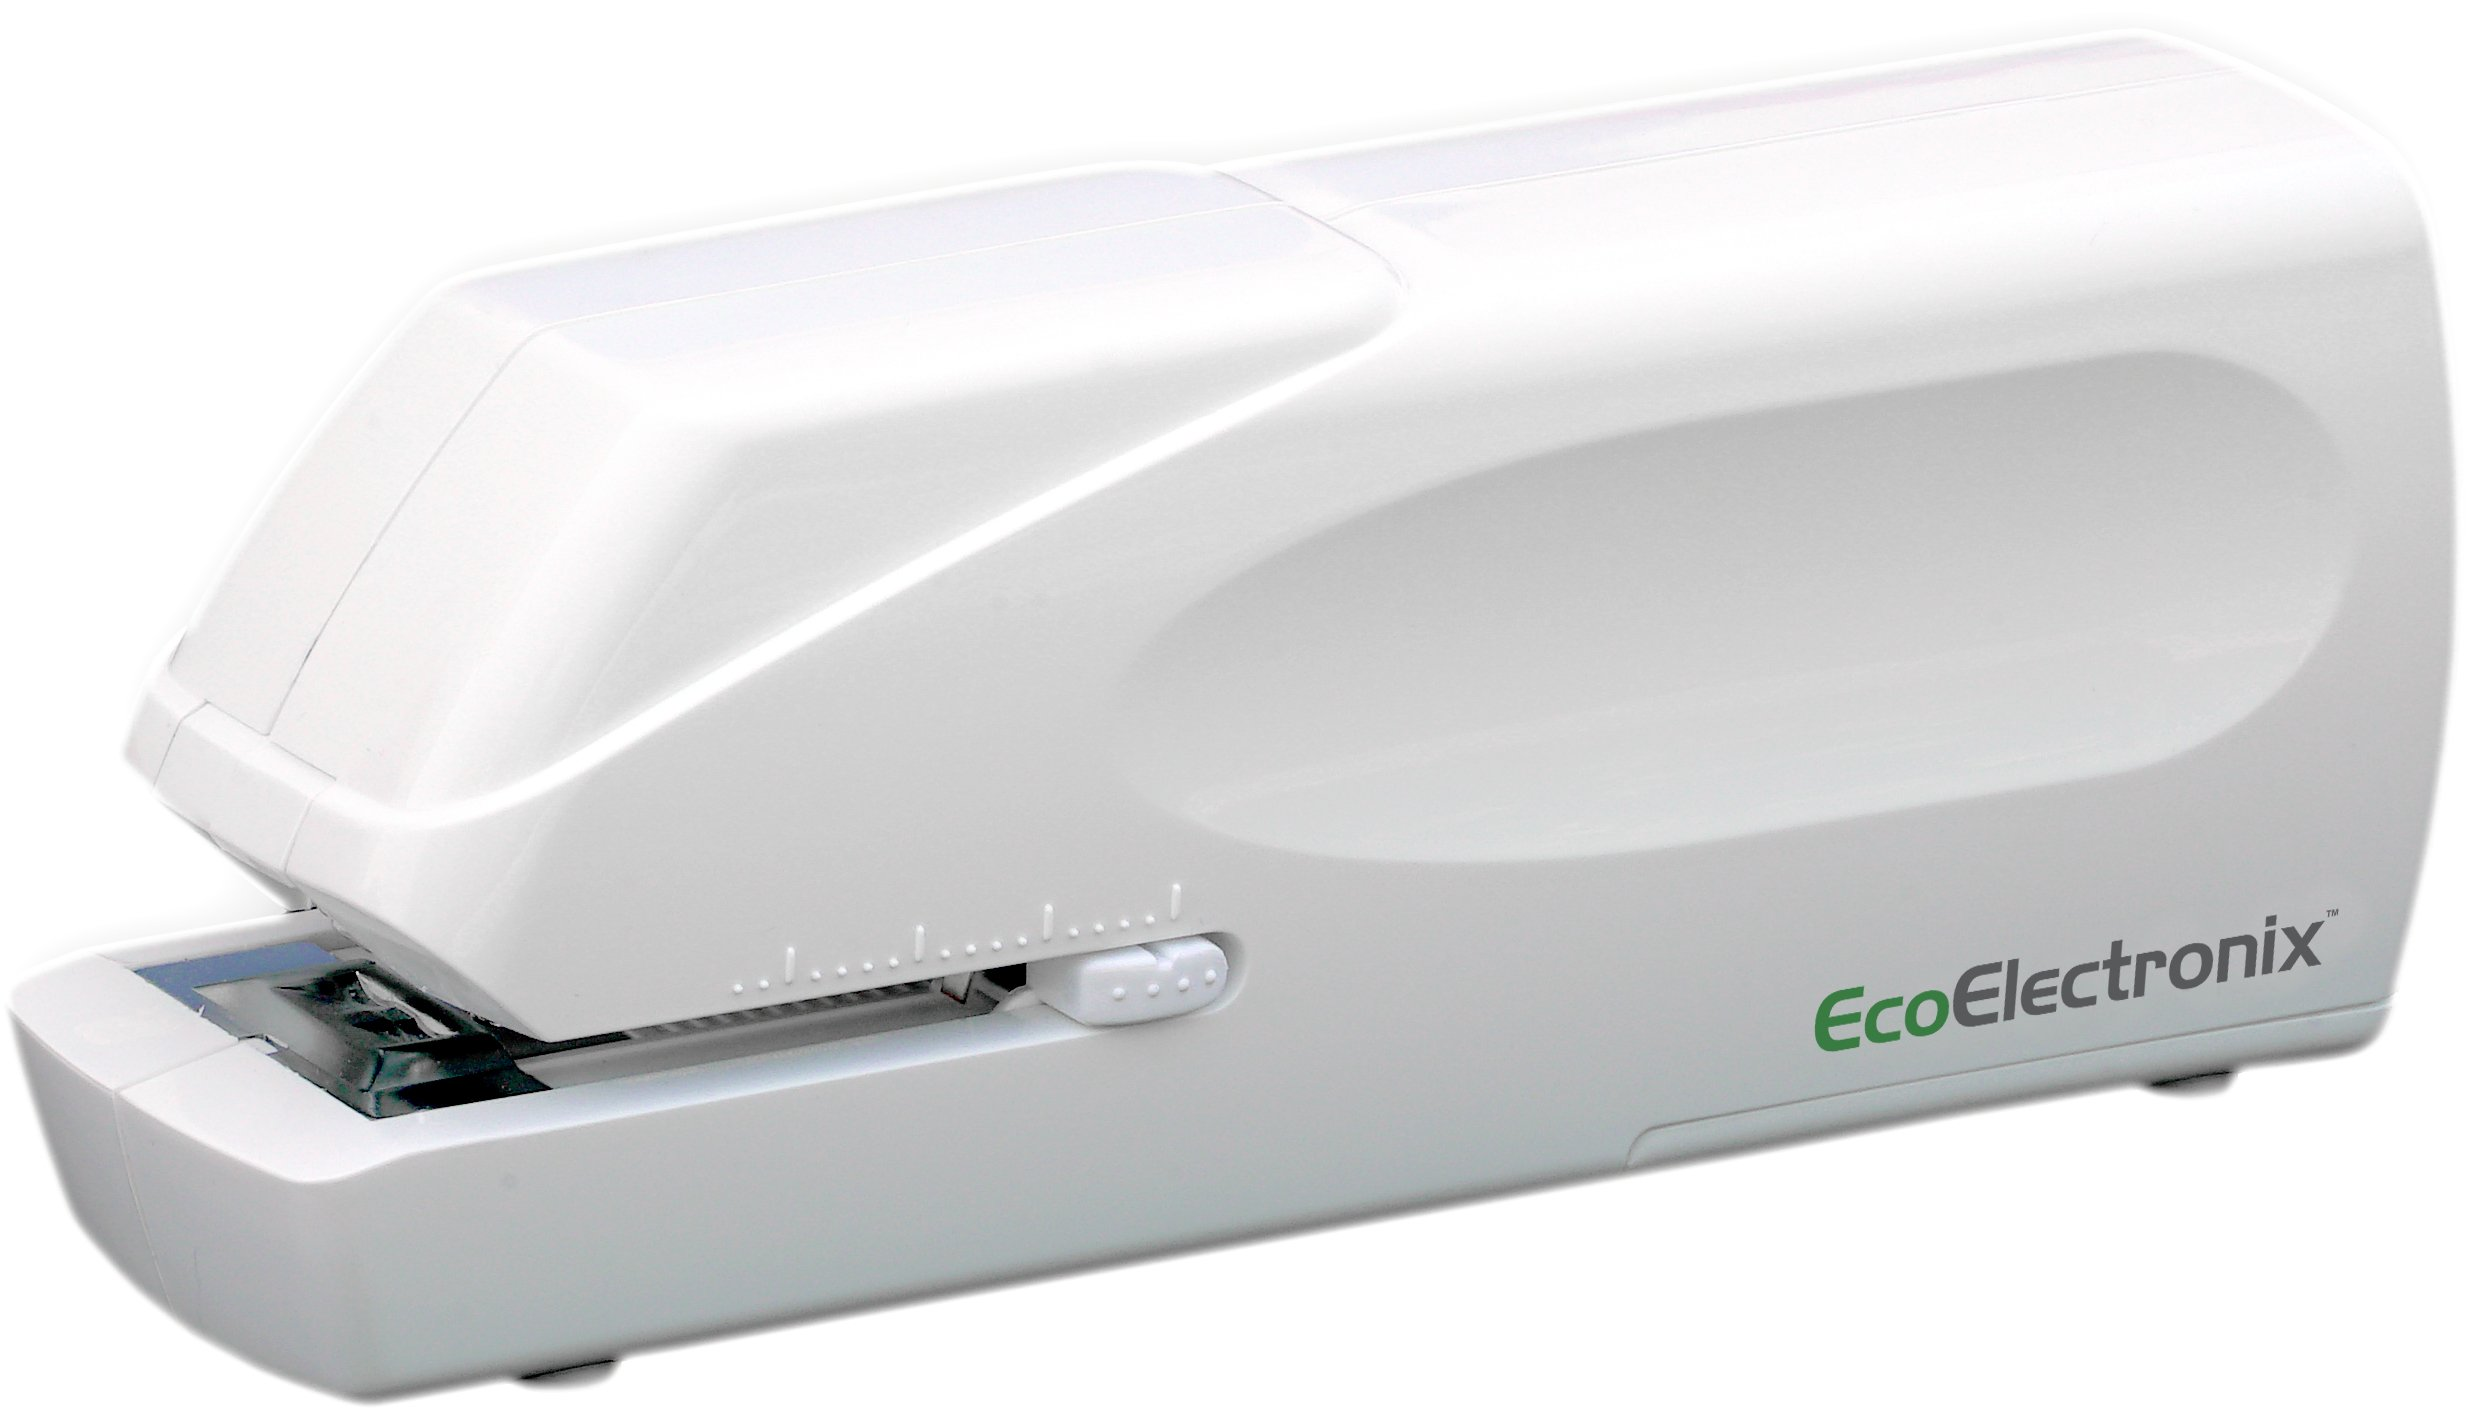 Electric Stapler Heavy Duty Automatic Stapler-25 Sheet Capacity Battery or AC Powered Battery Operated or AC Adapter(Included)